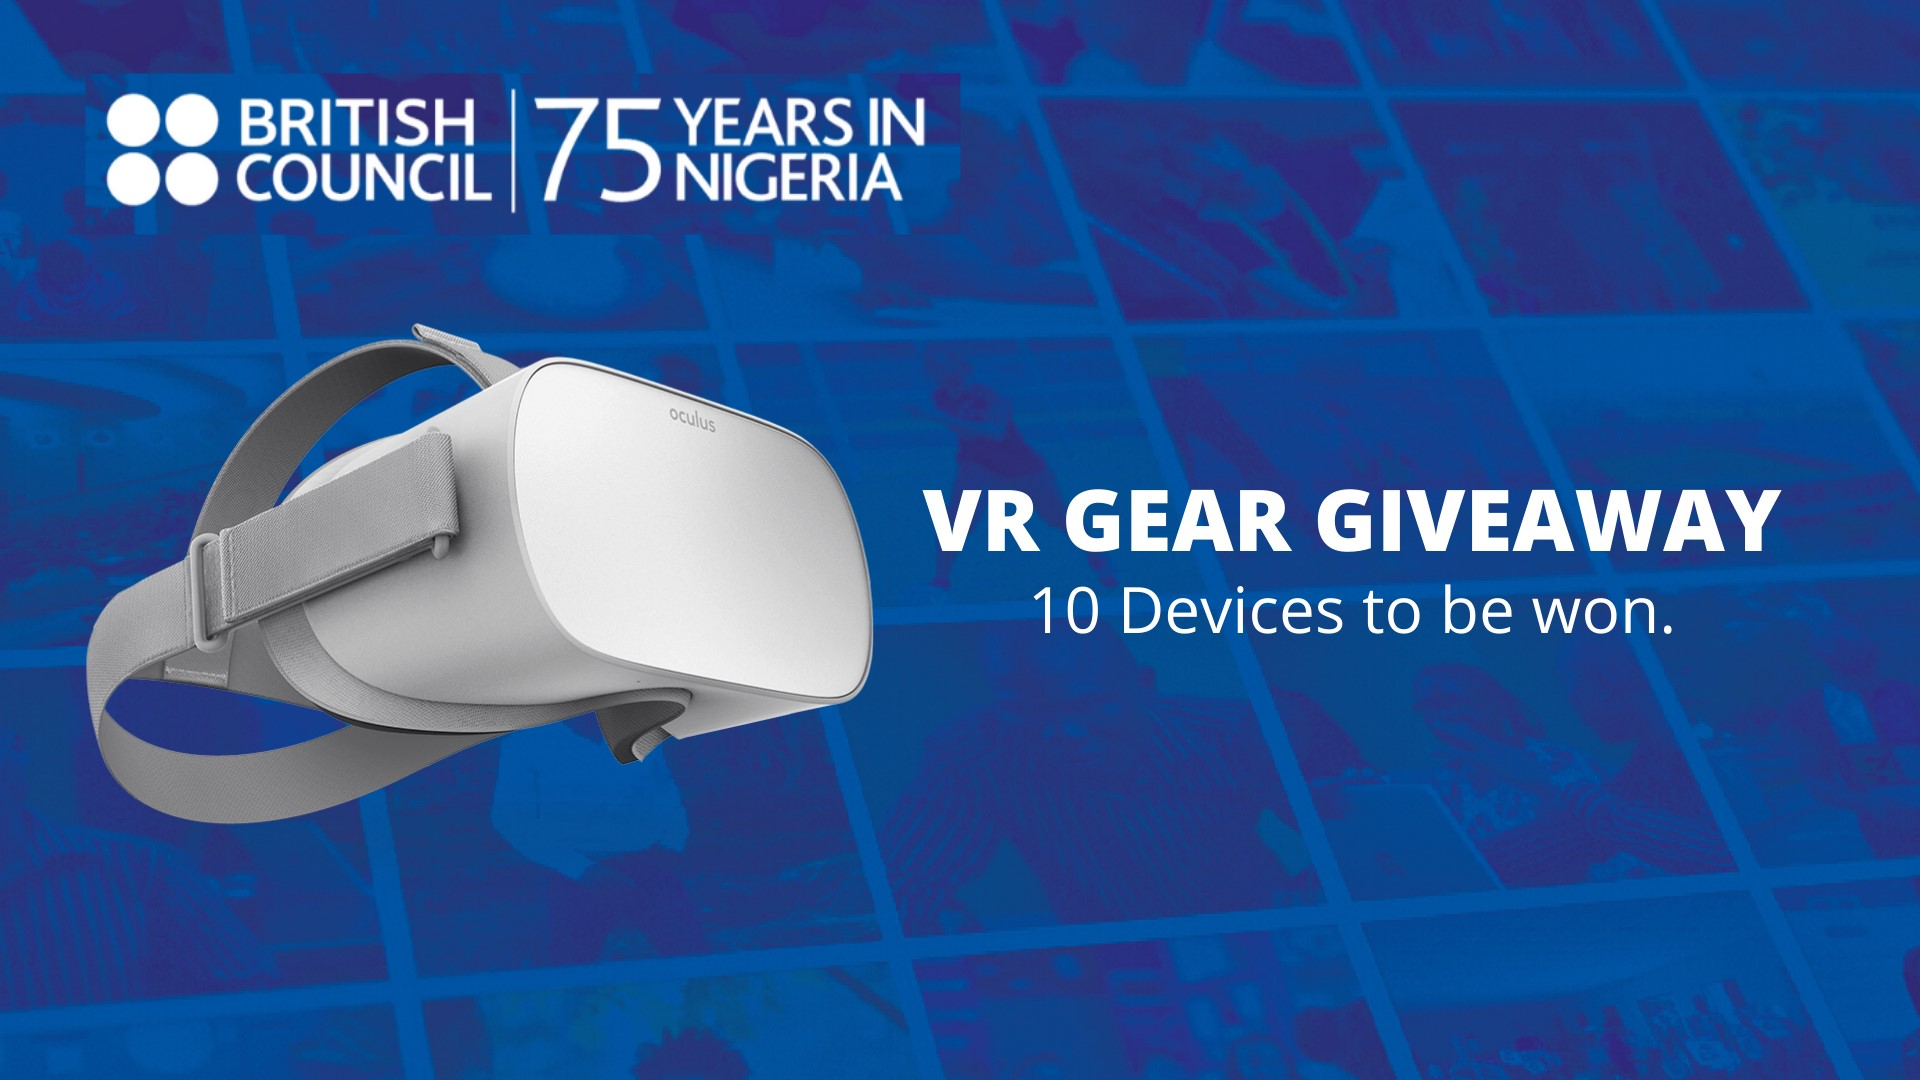 British Council is Marking 75Years in Nigeria and Here is The VR Gear Giveaway.